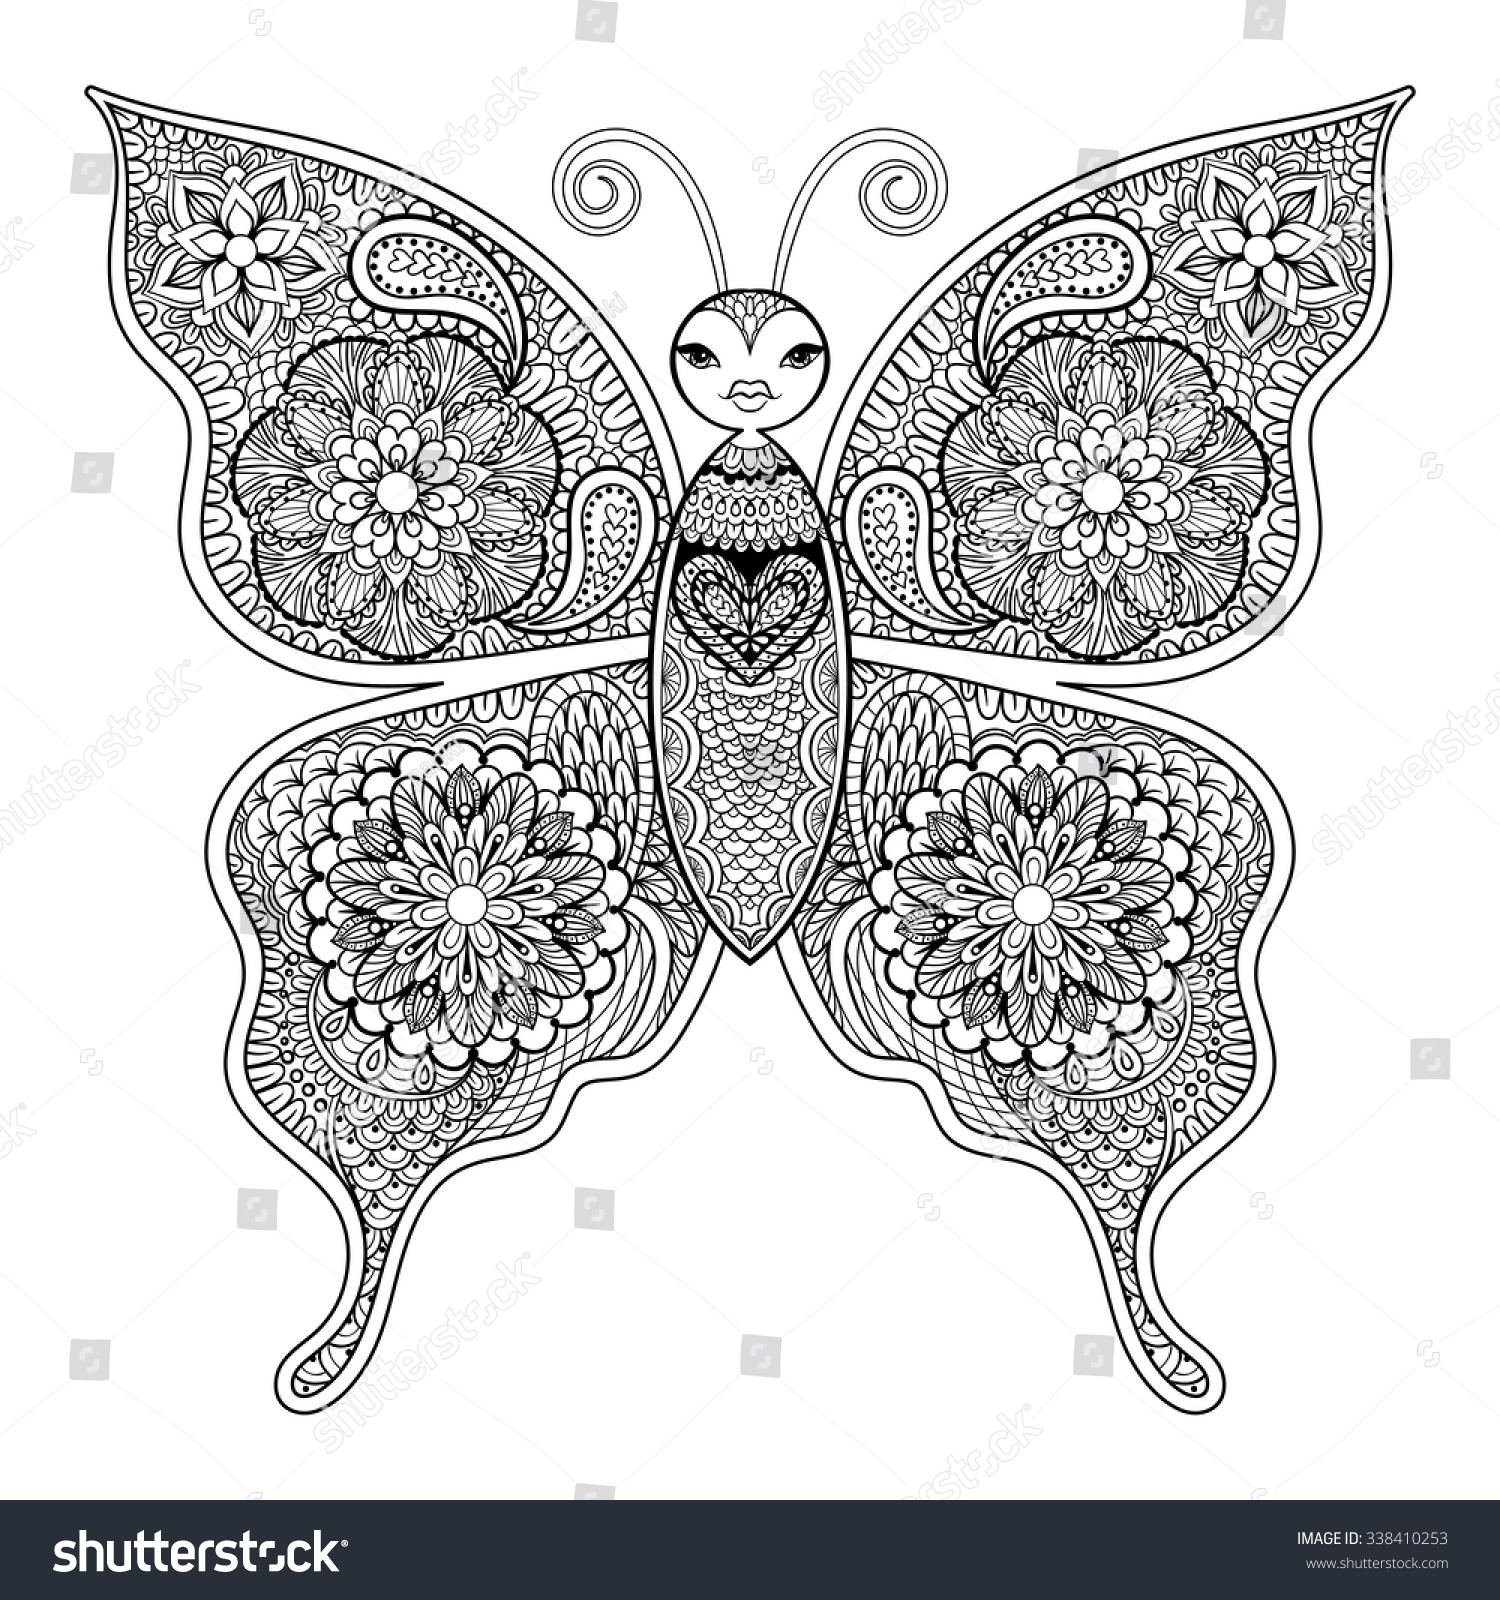 Zentangle vector butterfly adult anti stress stock vector for Coloring pages of butterflies for adults